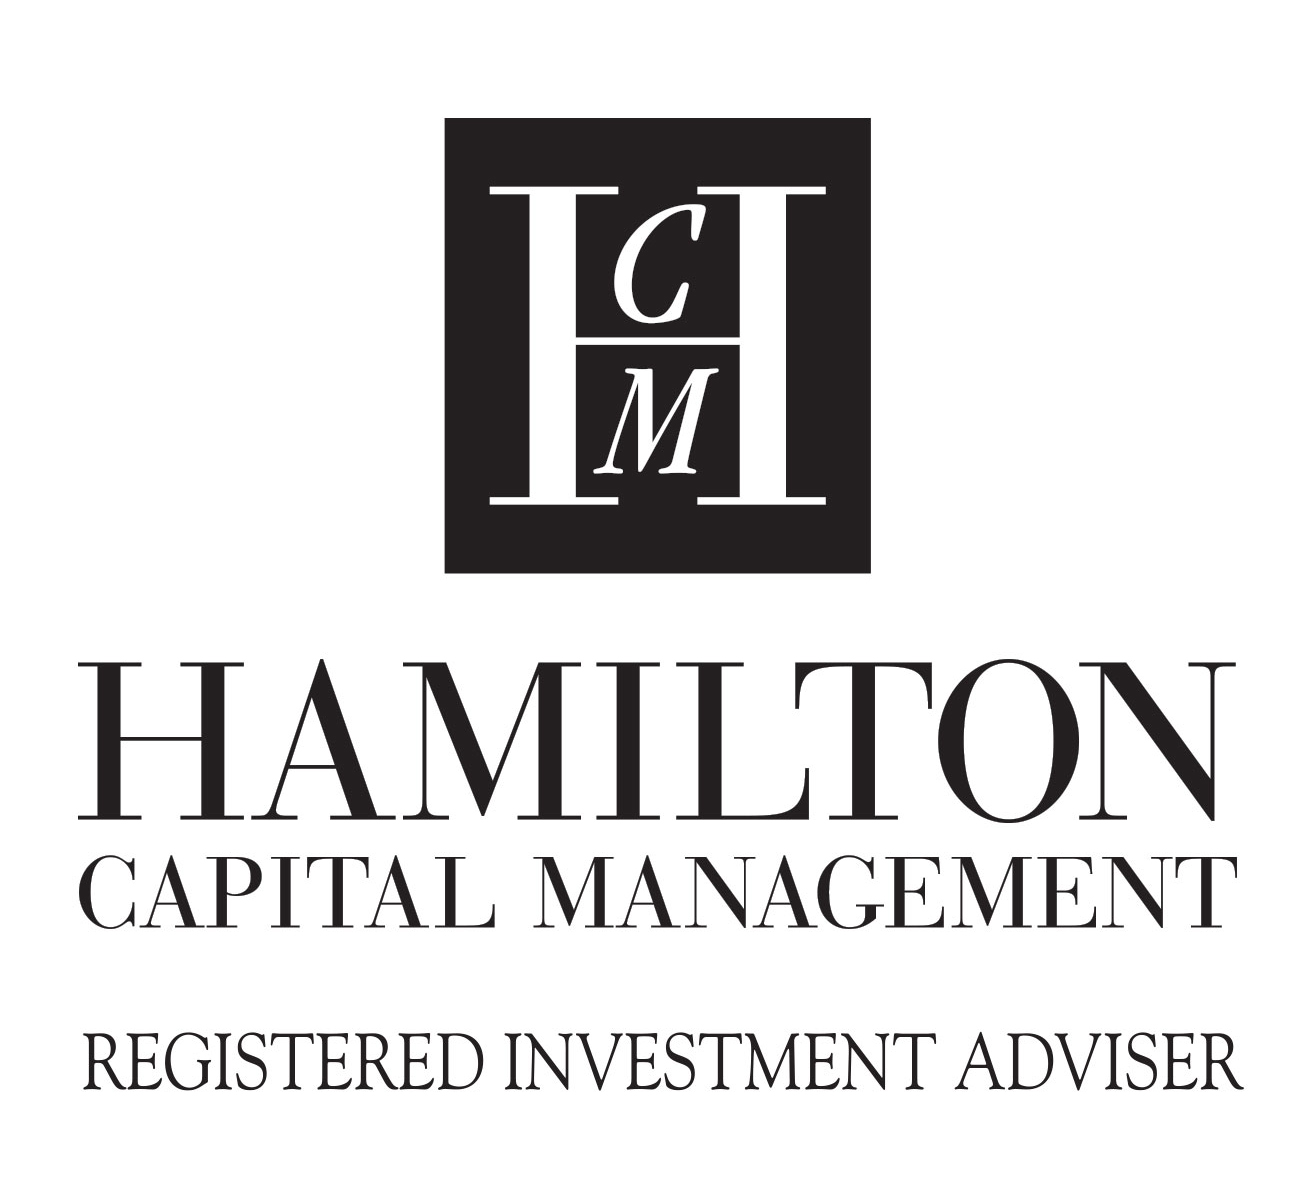 Hamilton Capital Management